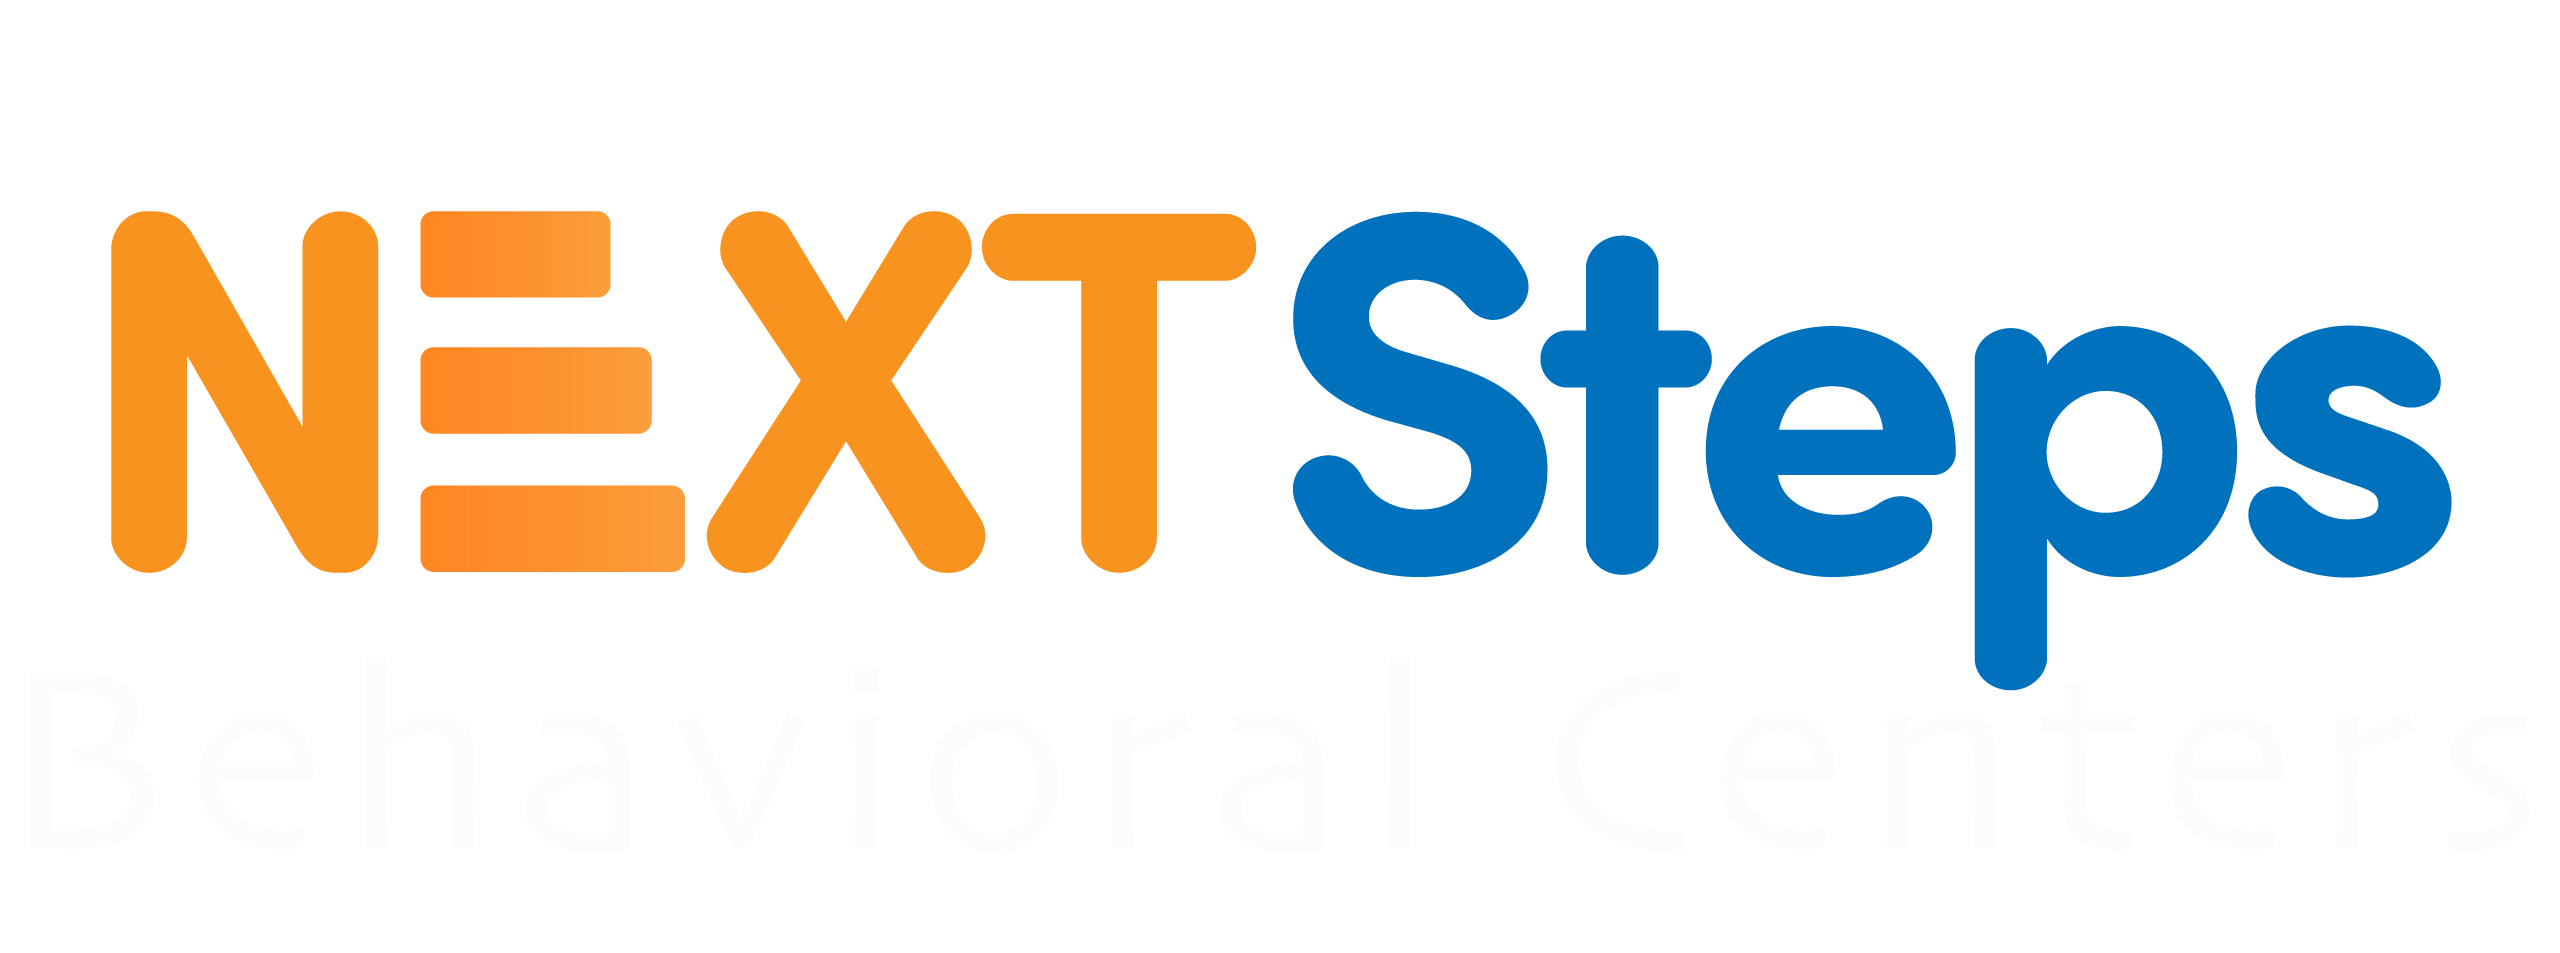 Next Steps Behavioral Centers Logo